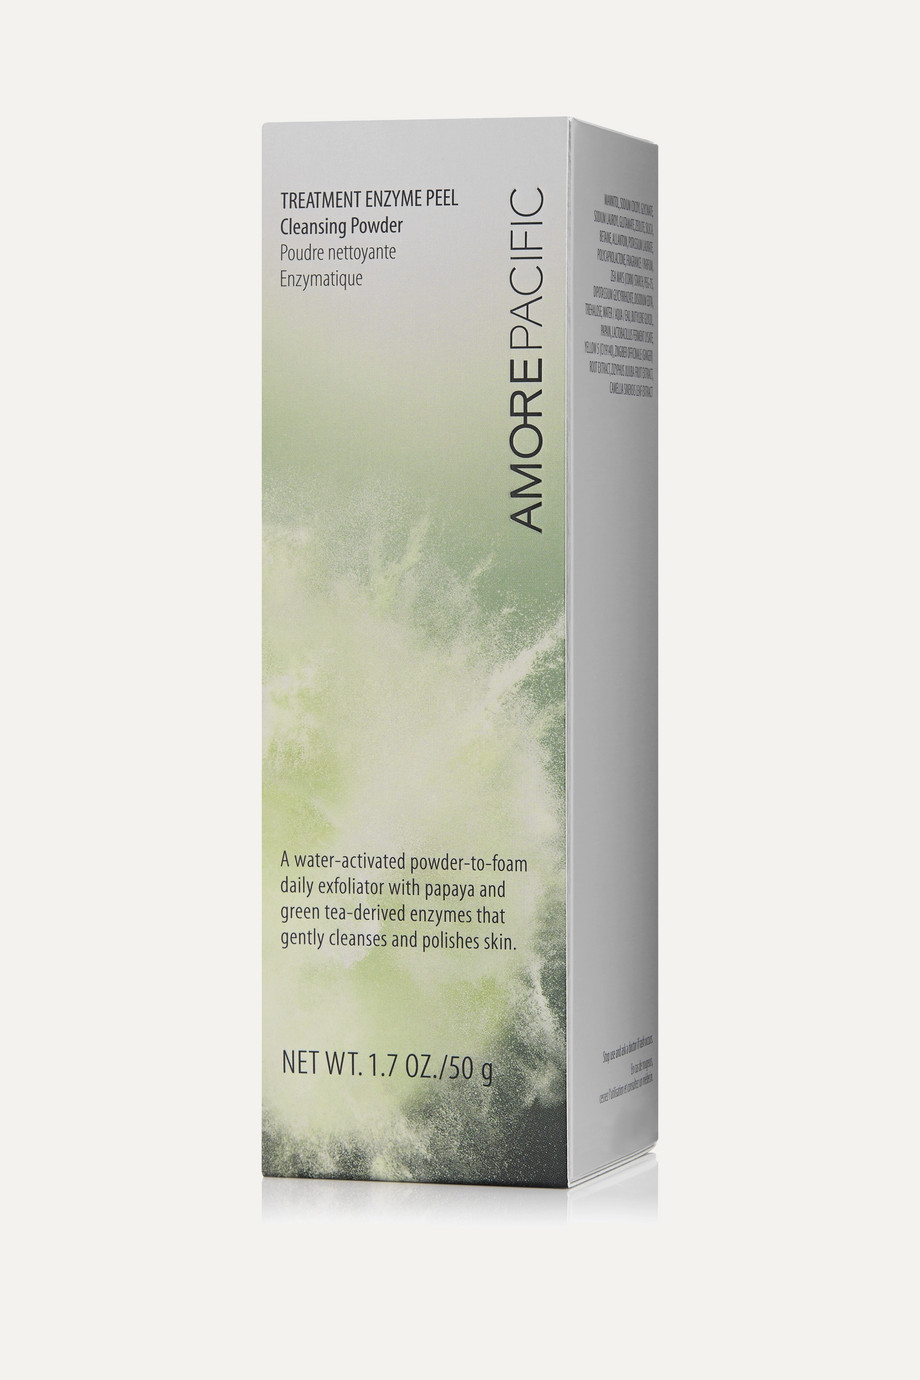 AMOREPACIFIC Treatment Enzyme Peel Cleansing Powder, 50g